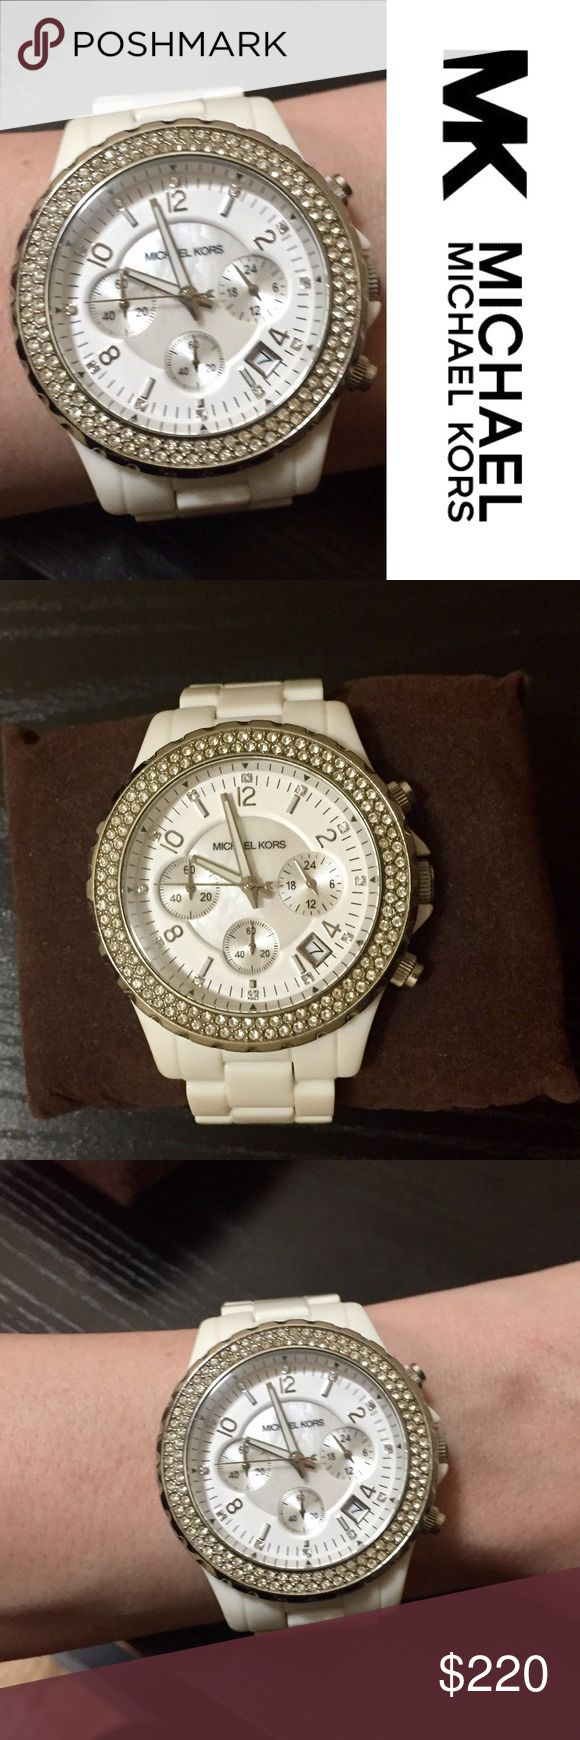 Gorgeous Michael Kors Watch White Michael Kors watch in practically perfect condition. 2 rows of Swarovski crystals around the outside of the face, plus 12 Swarovski crystals and mother of pearl on the face. The only flaws on this watch are a some small scratches on the clasp. Face and band are in perfect condition. Comes with box, manual and extra links/pins. Does need the battery replaced. Michael Kors Accessories Watches